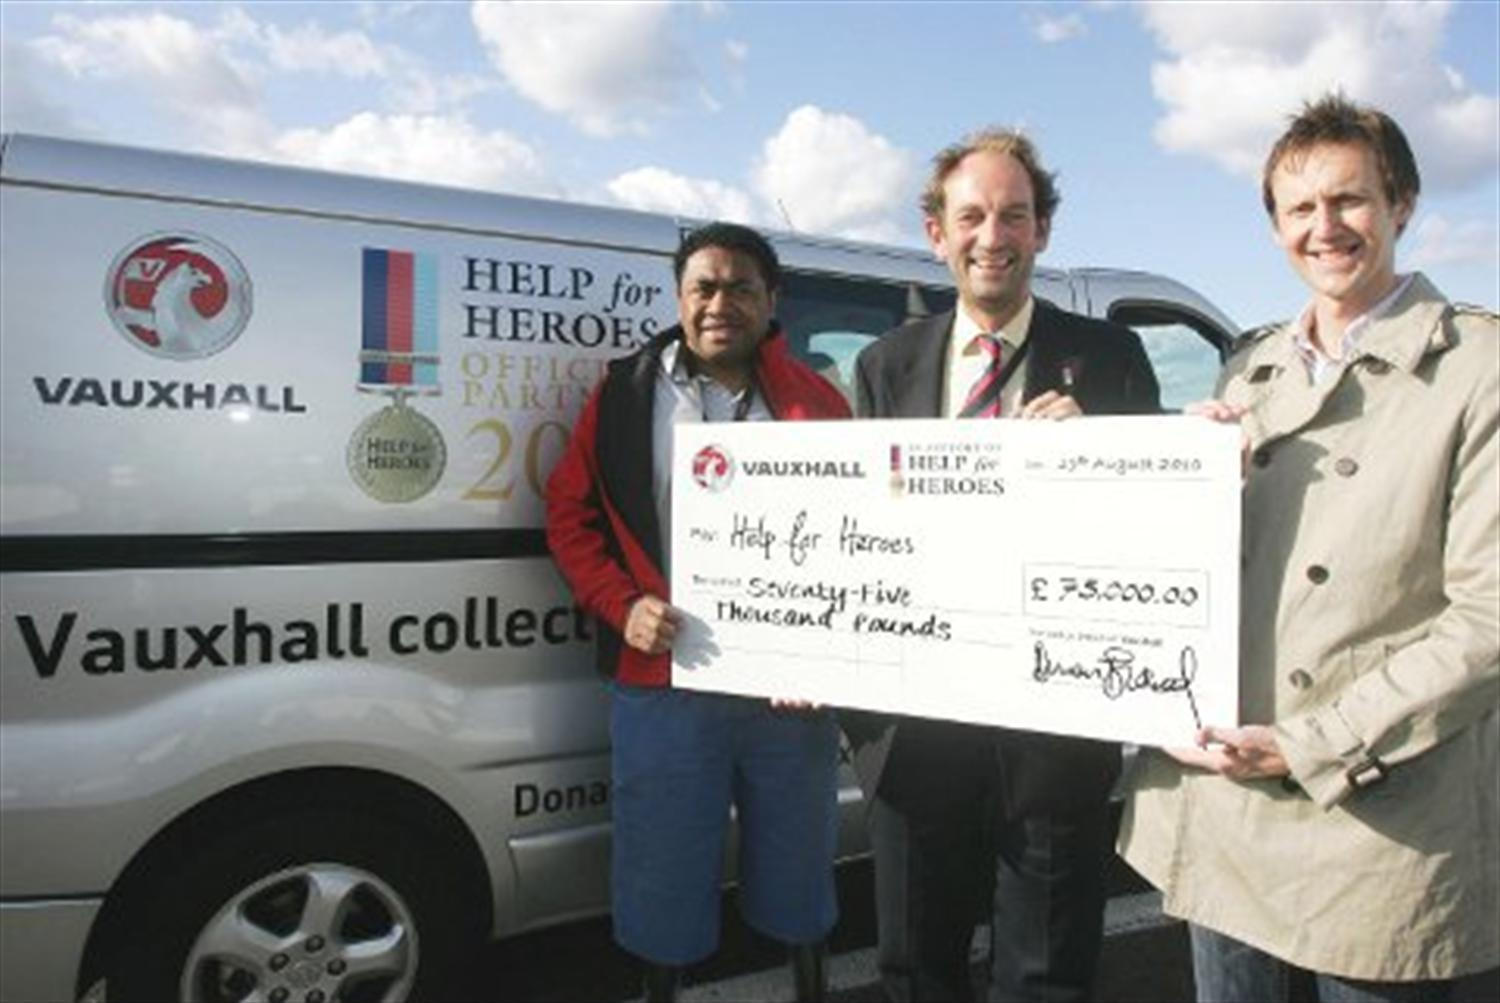 Perrys Provides Help for Heroes